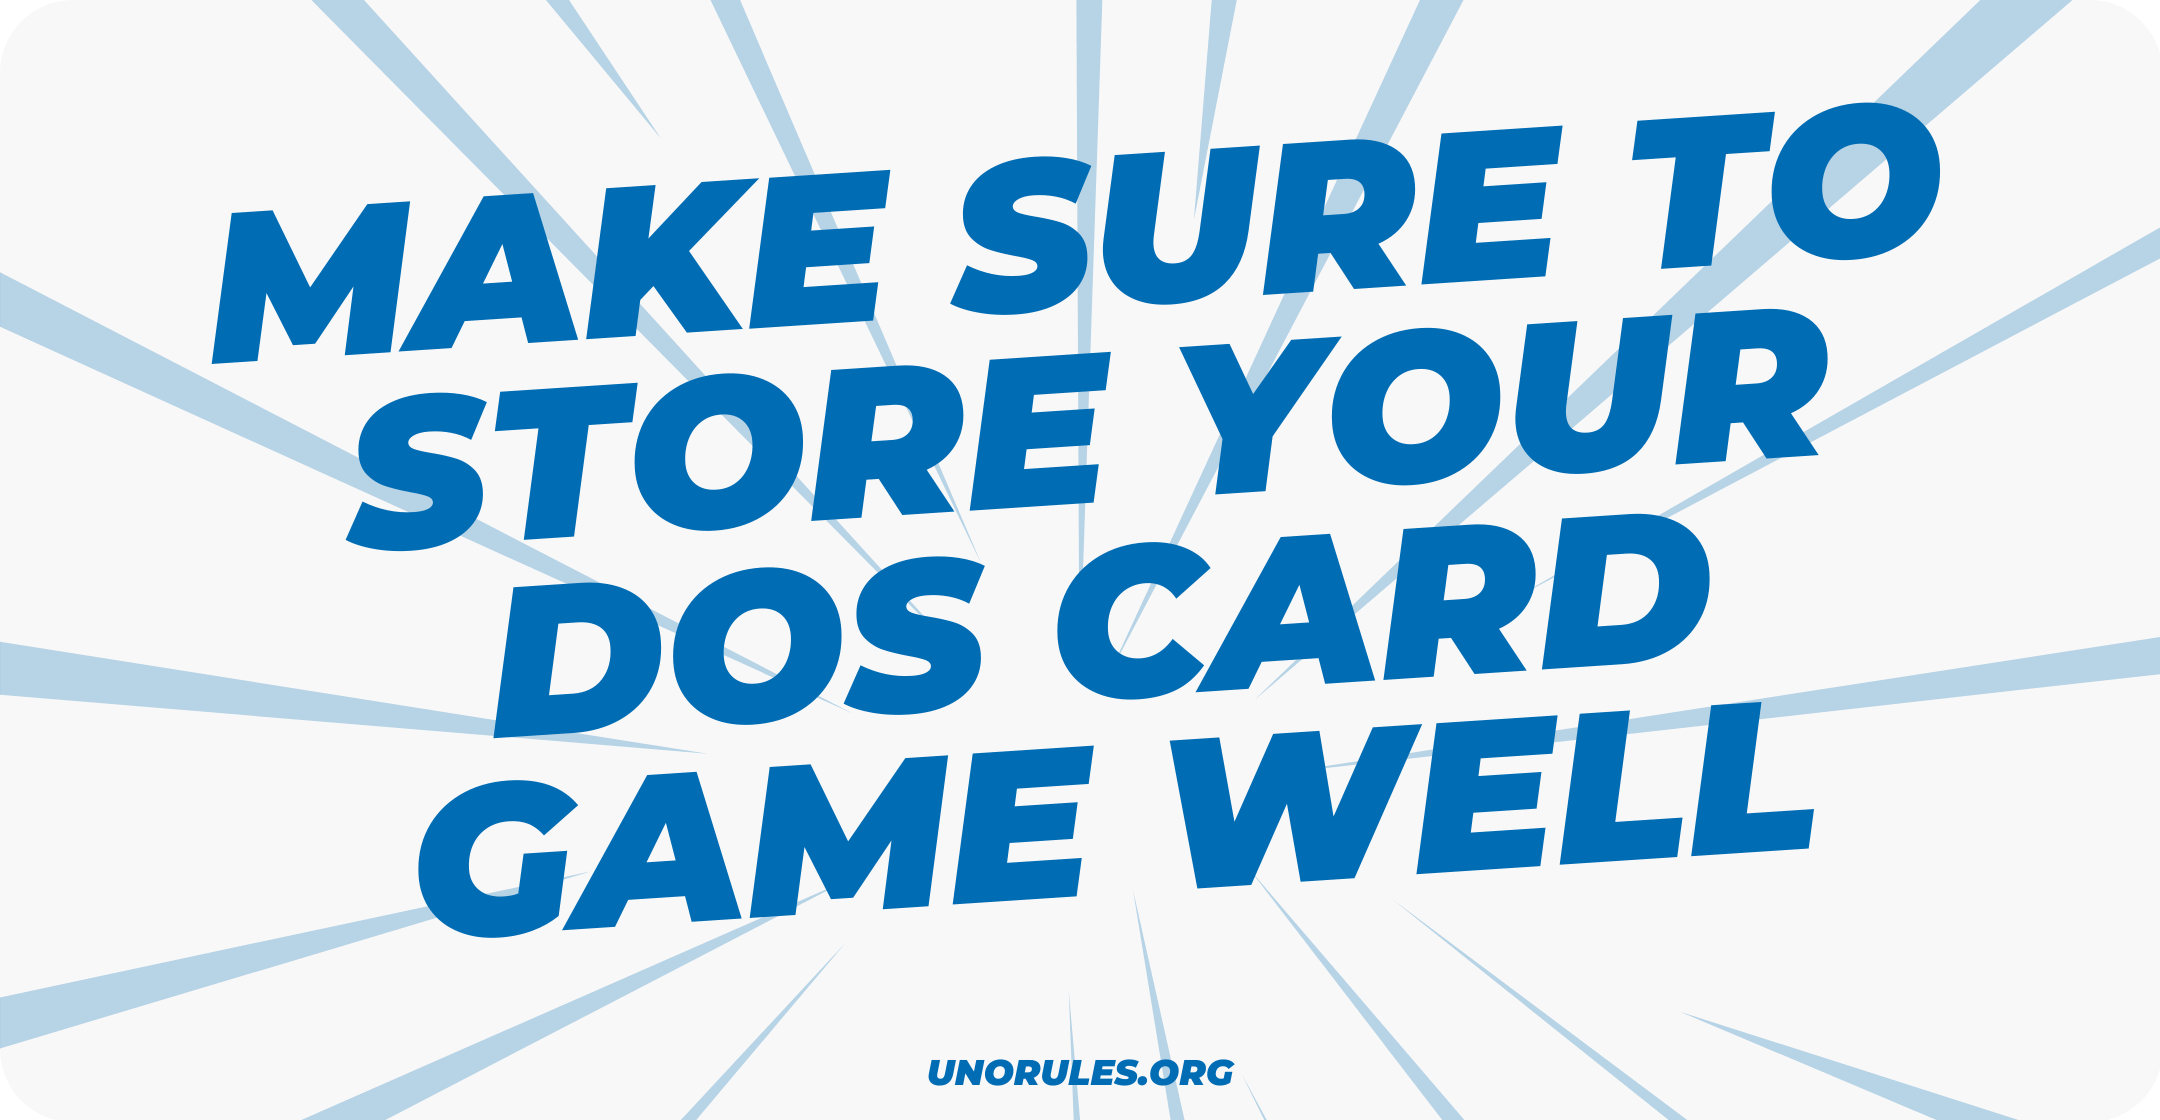 Storing your Dos card game well